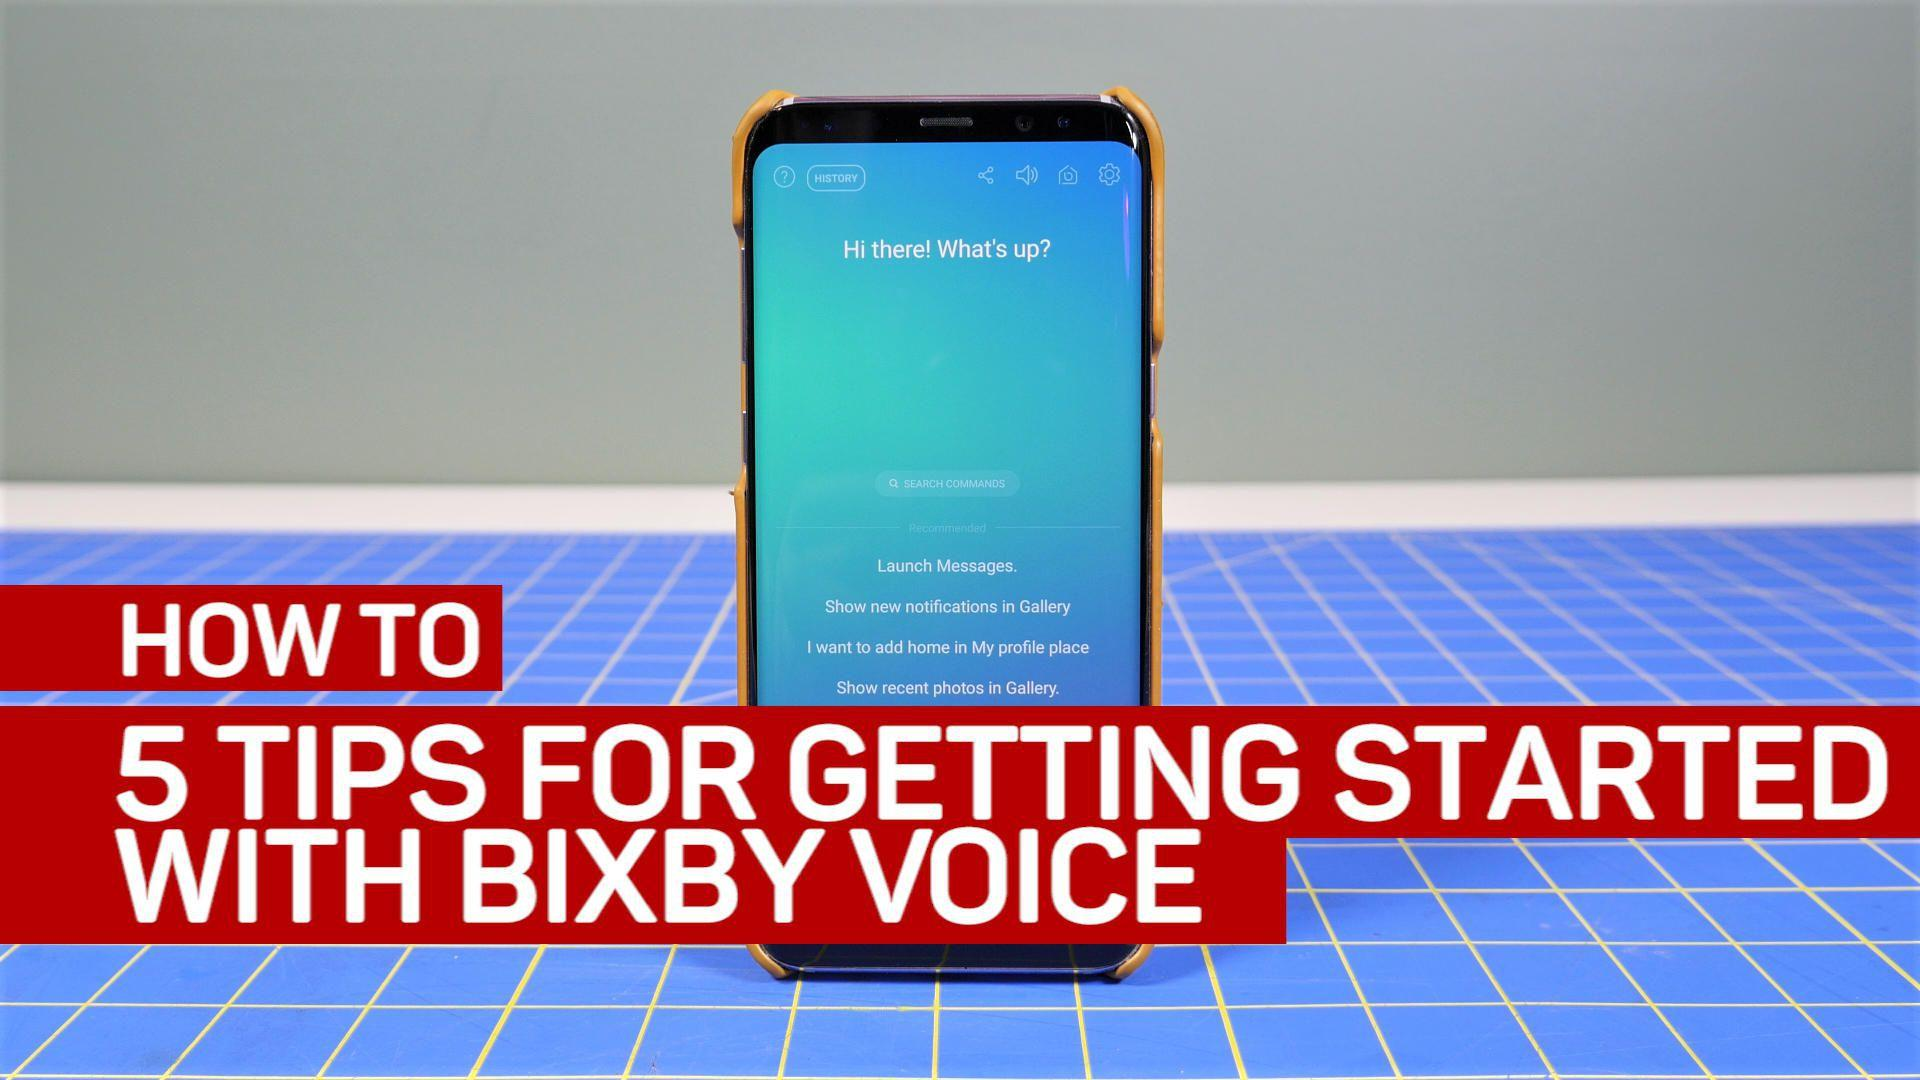 5 tips for getting started with Bixby Voice